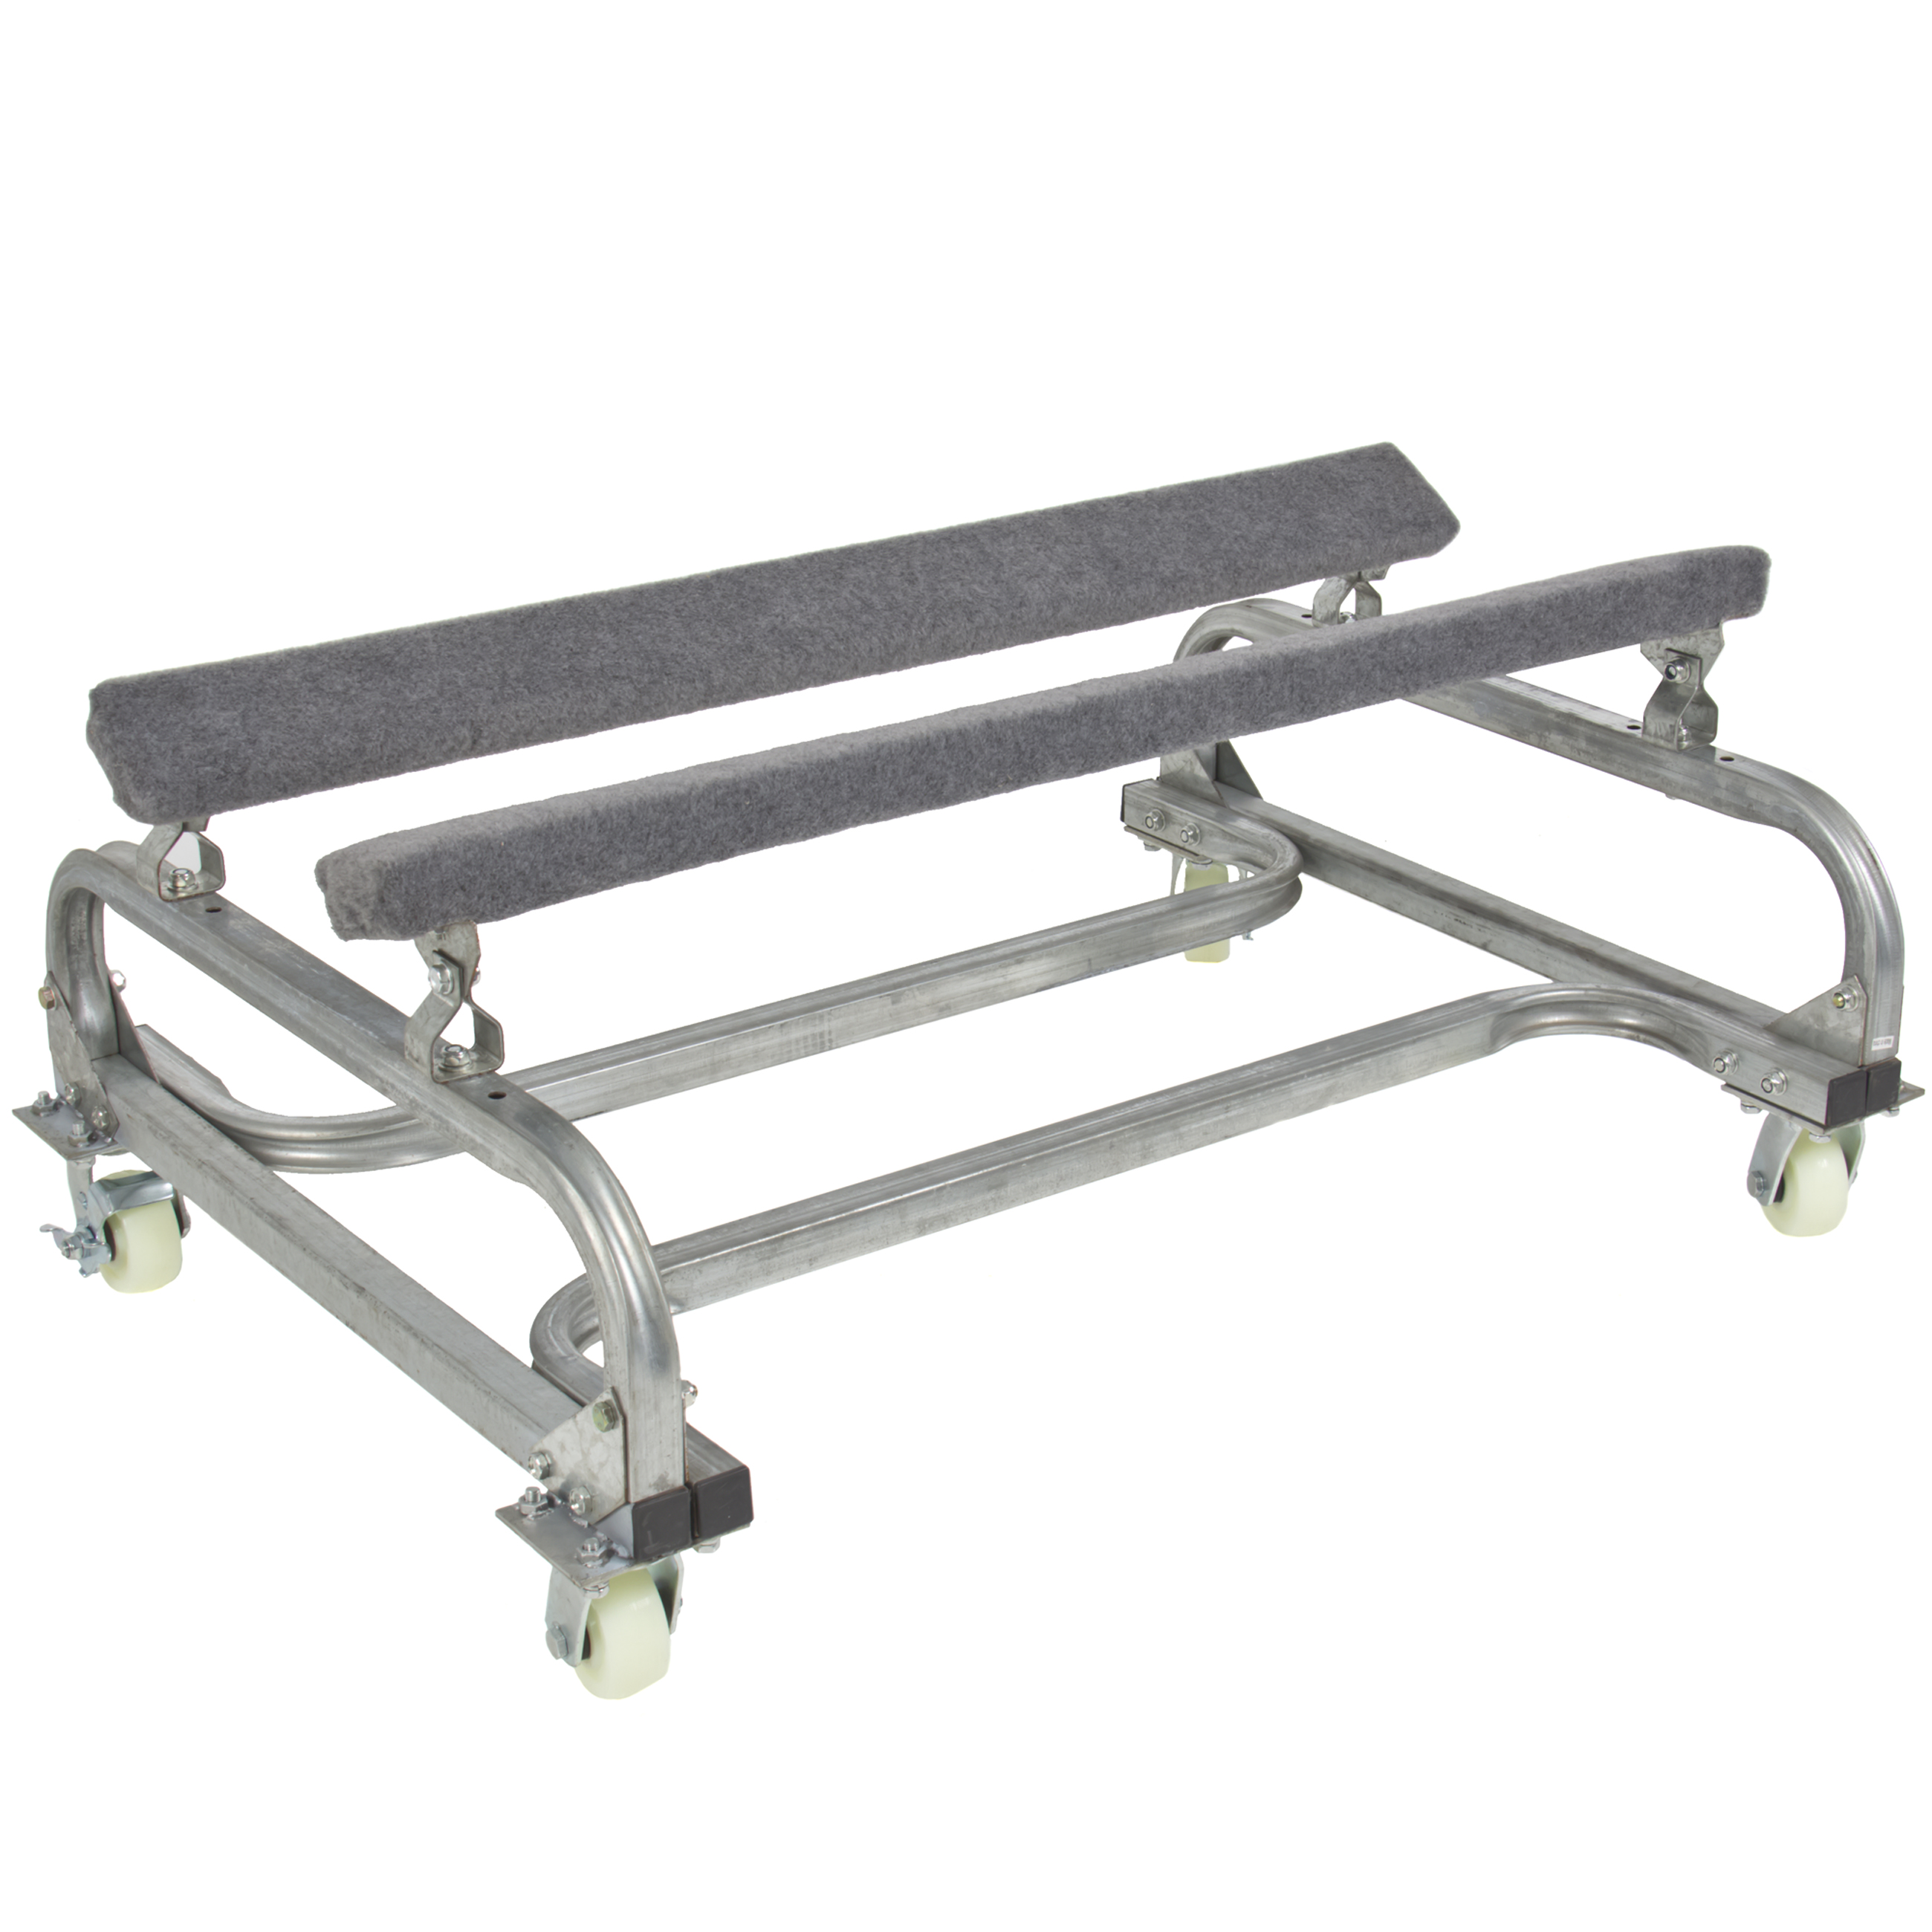 Best Choice Products Marine Dock Slip 1,000 lb PWC Boat Storage Dolly...